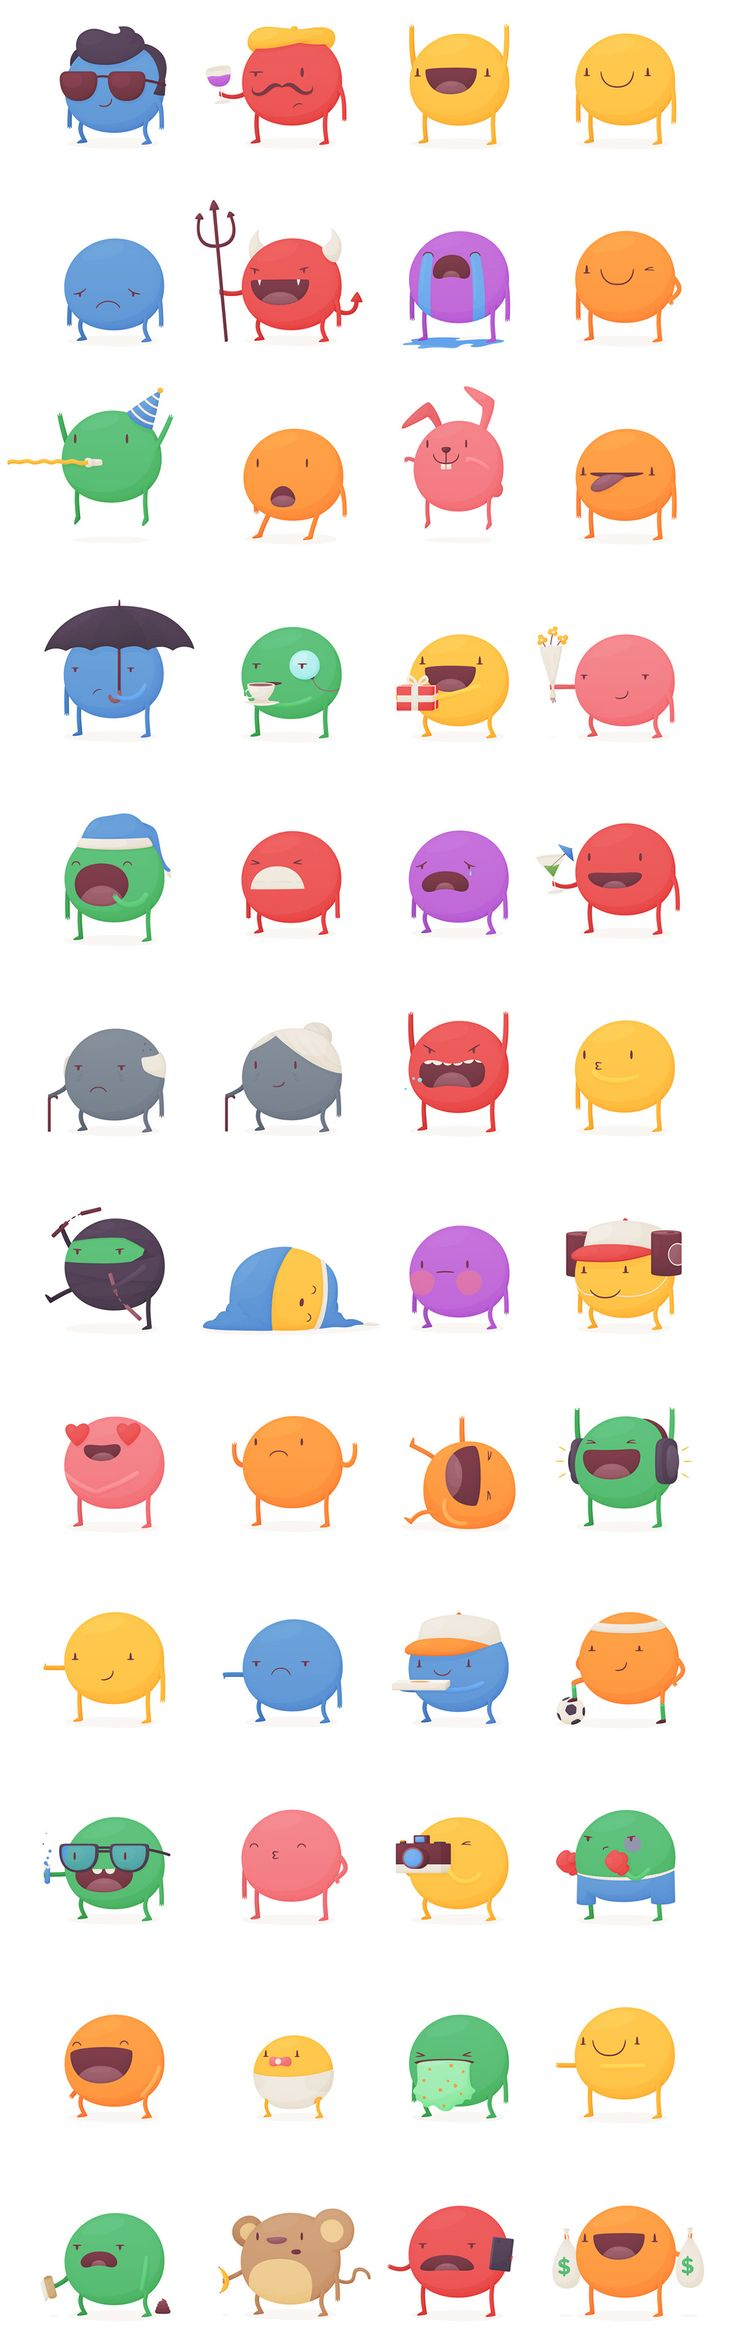 Kewe Stickers on Behance